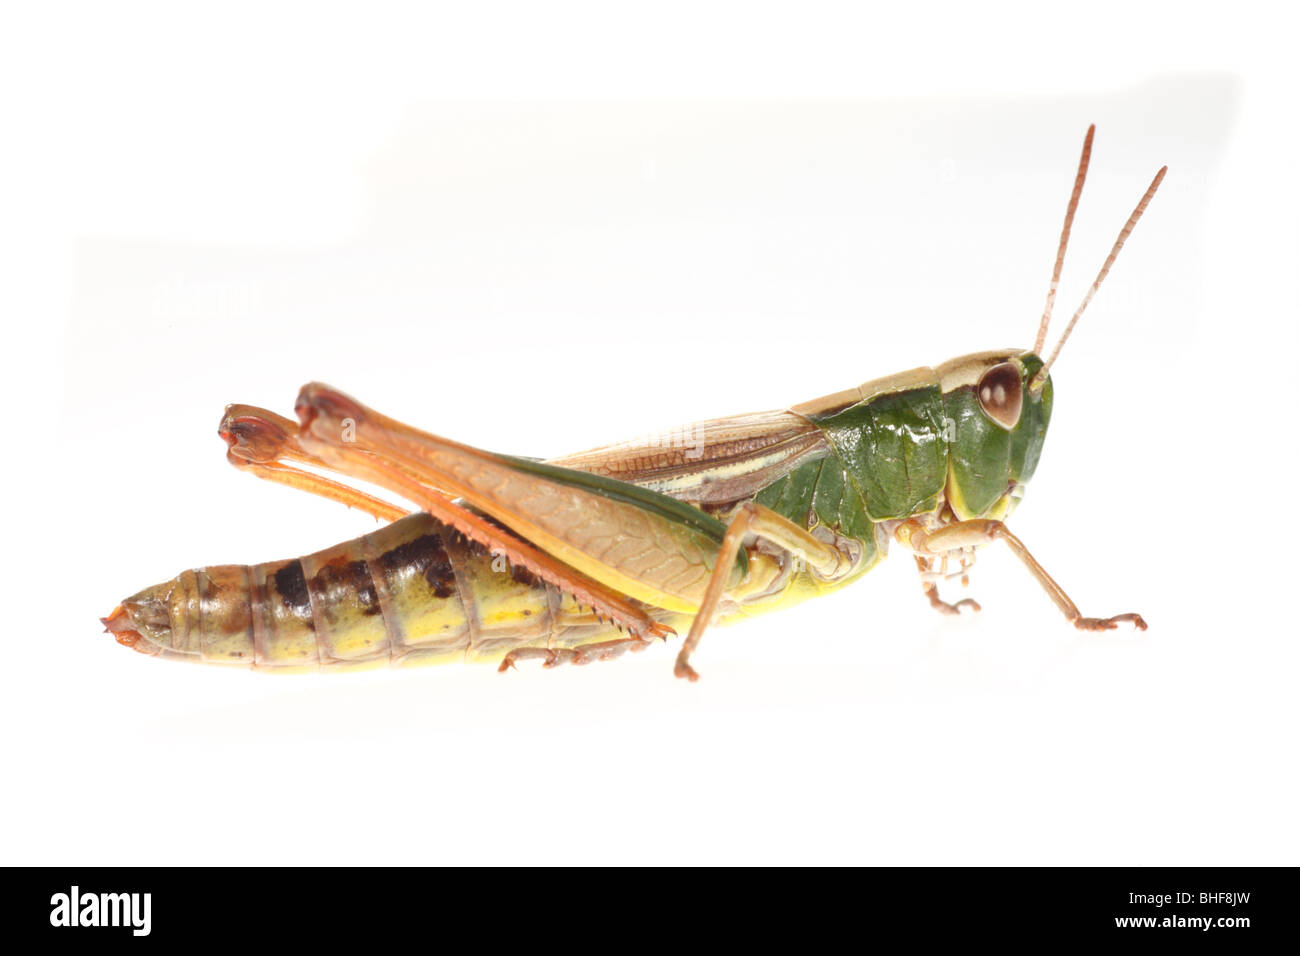 Female Meadow Grasshopper (Chorthippus parallelus). Live insect photographed against a white background on a portable - Stock Image